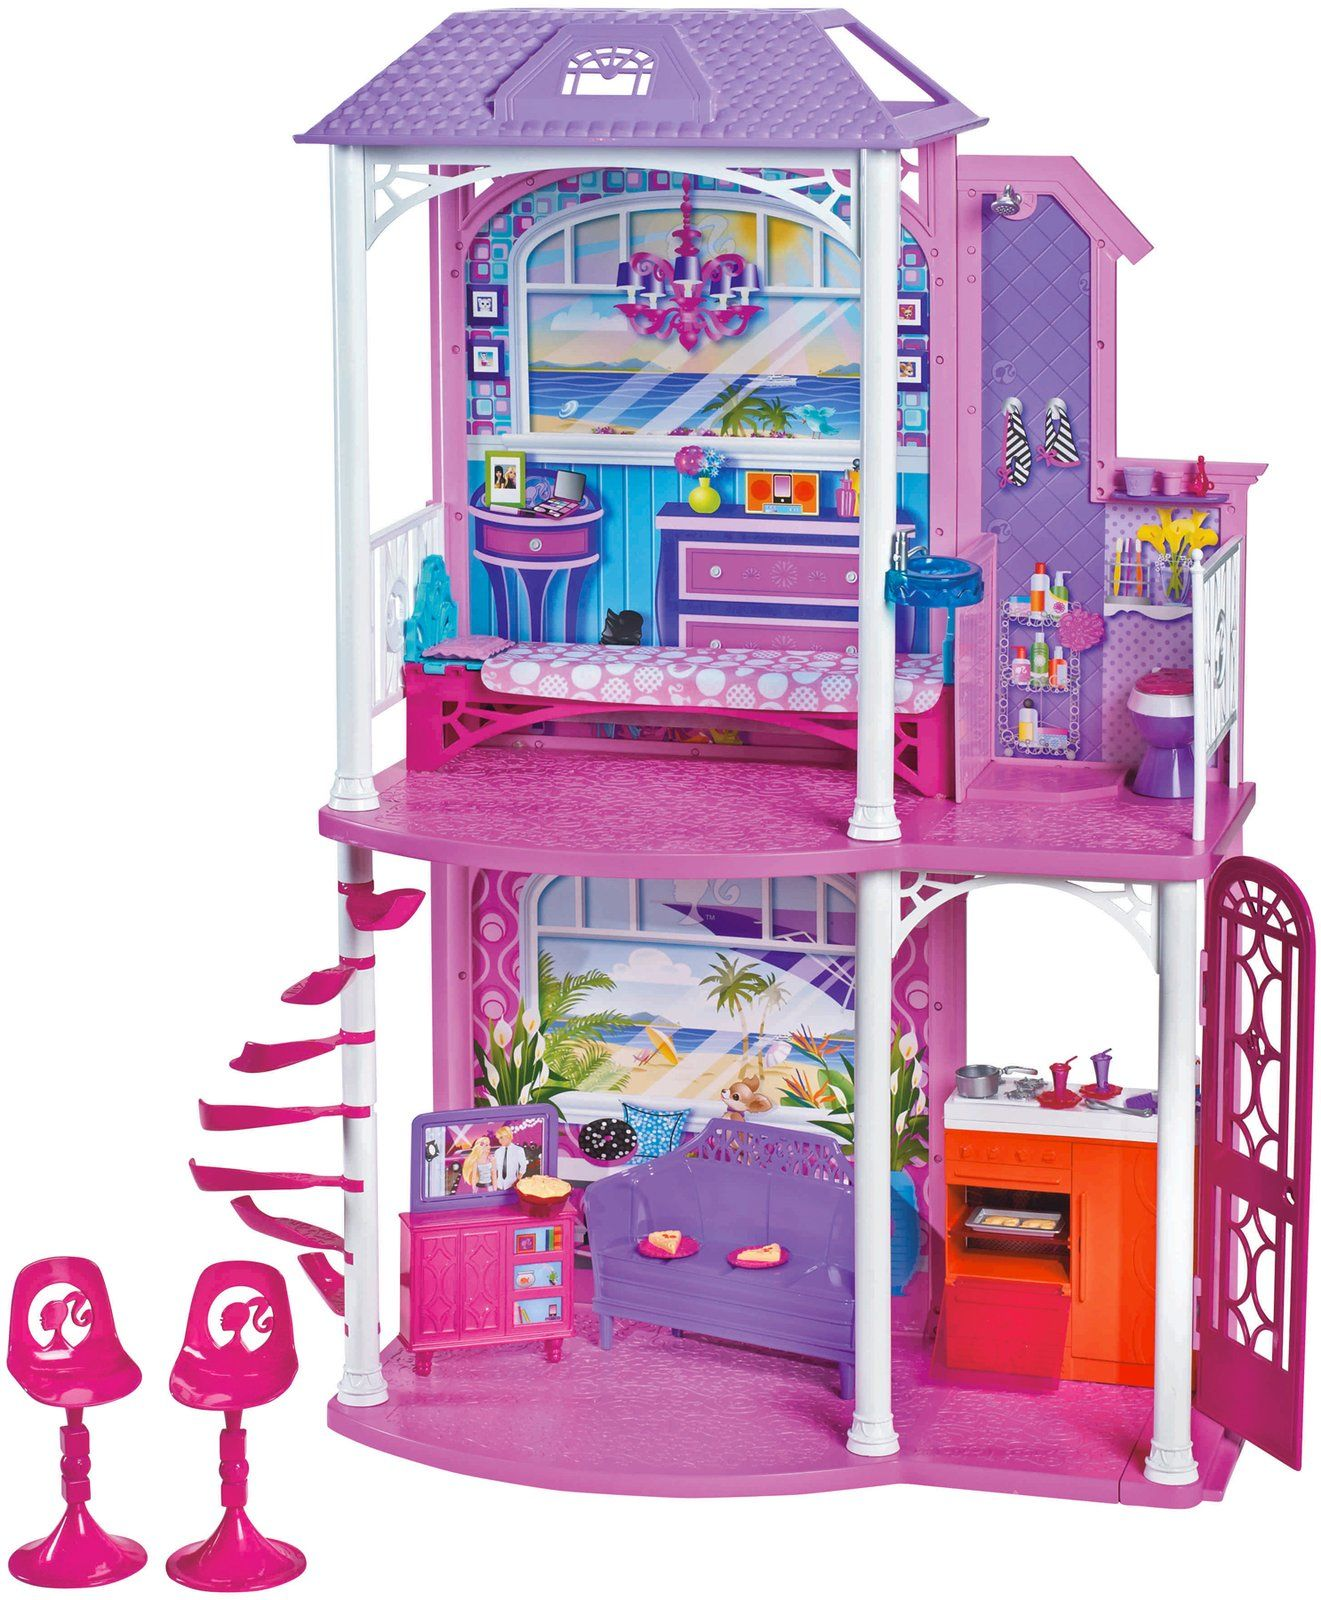 68ed7e45b0252f1fc7f6cf3dc69fccab barbie dream house 3 story with elevator furniture accessories Barbie Dreamhouse at bayanpartner.co